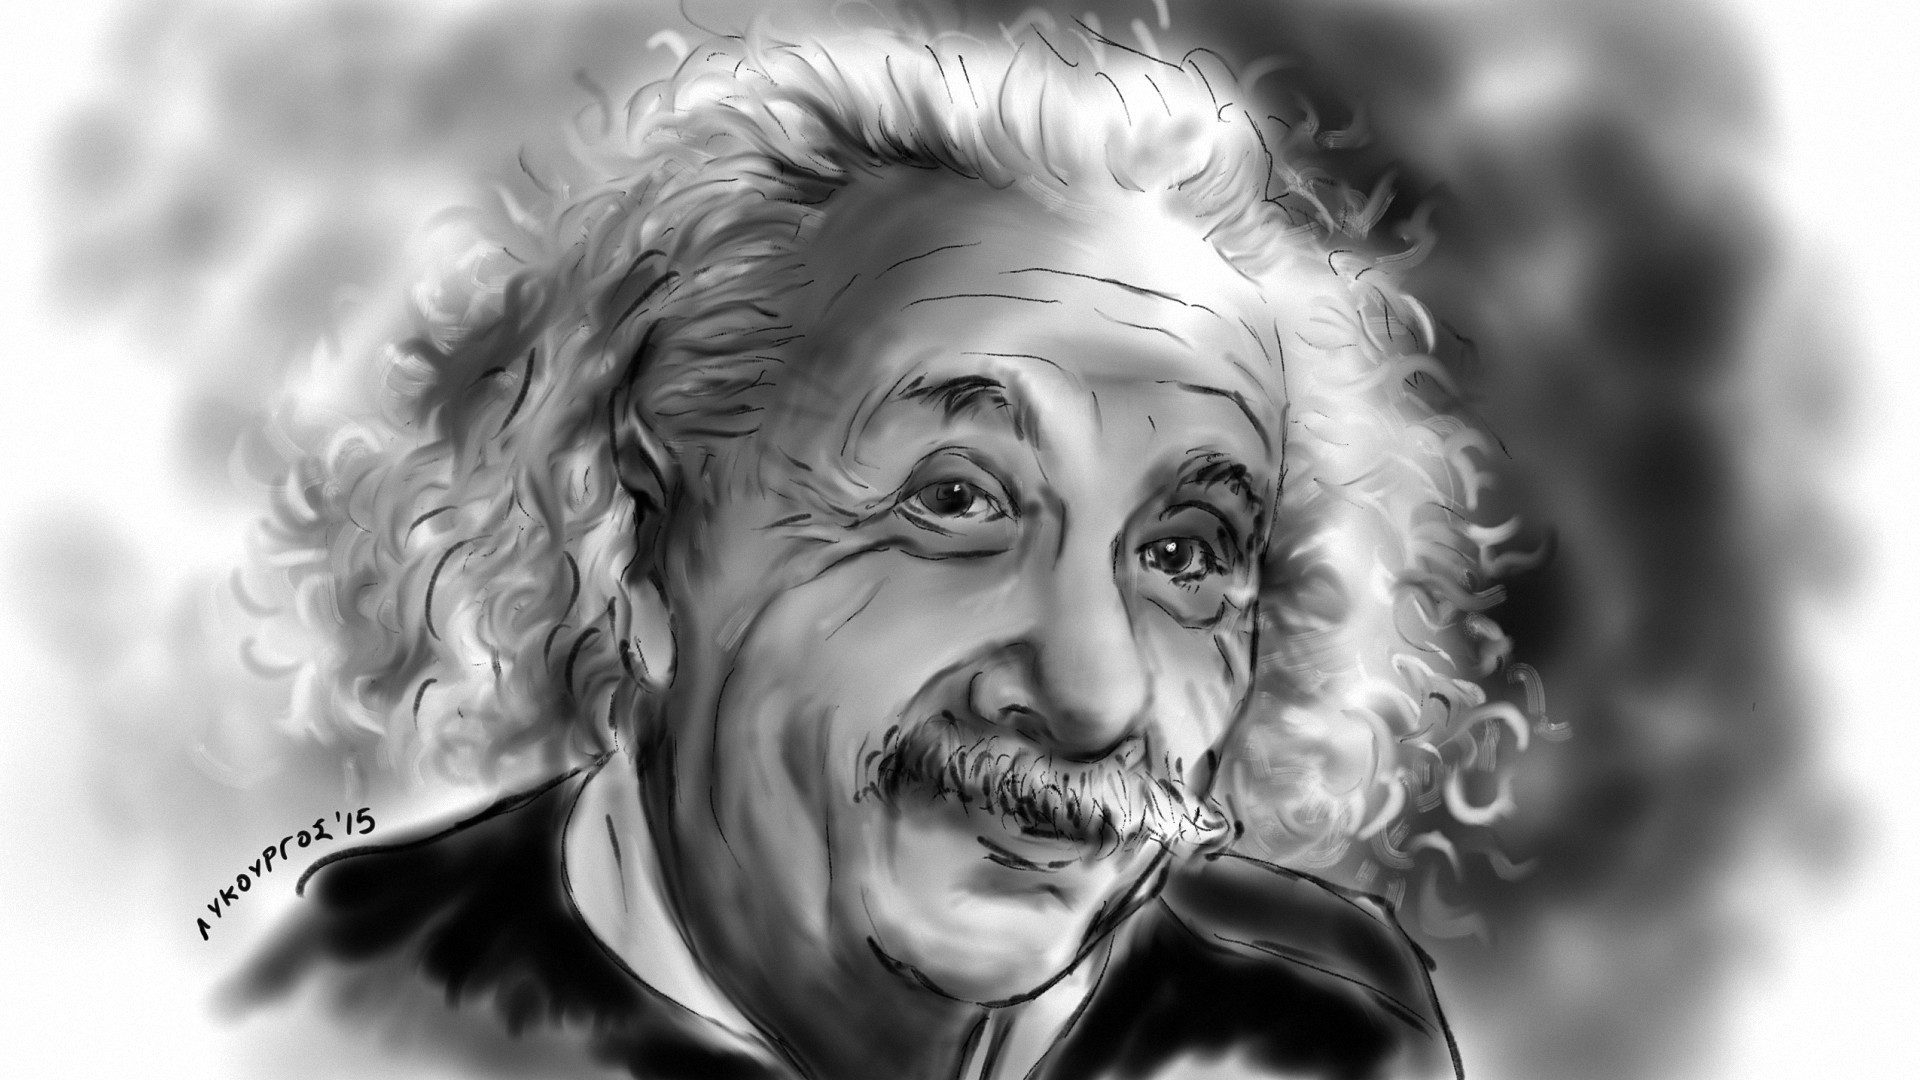 Albert einstein wallpaper 74 images - Albert einstein hd images ...